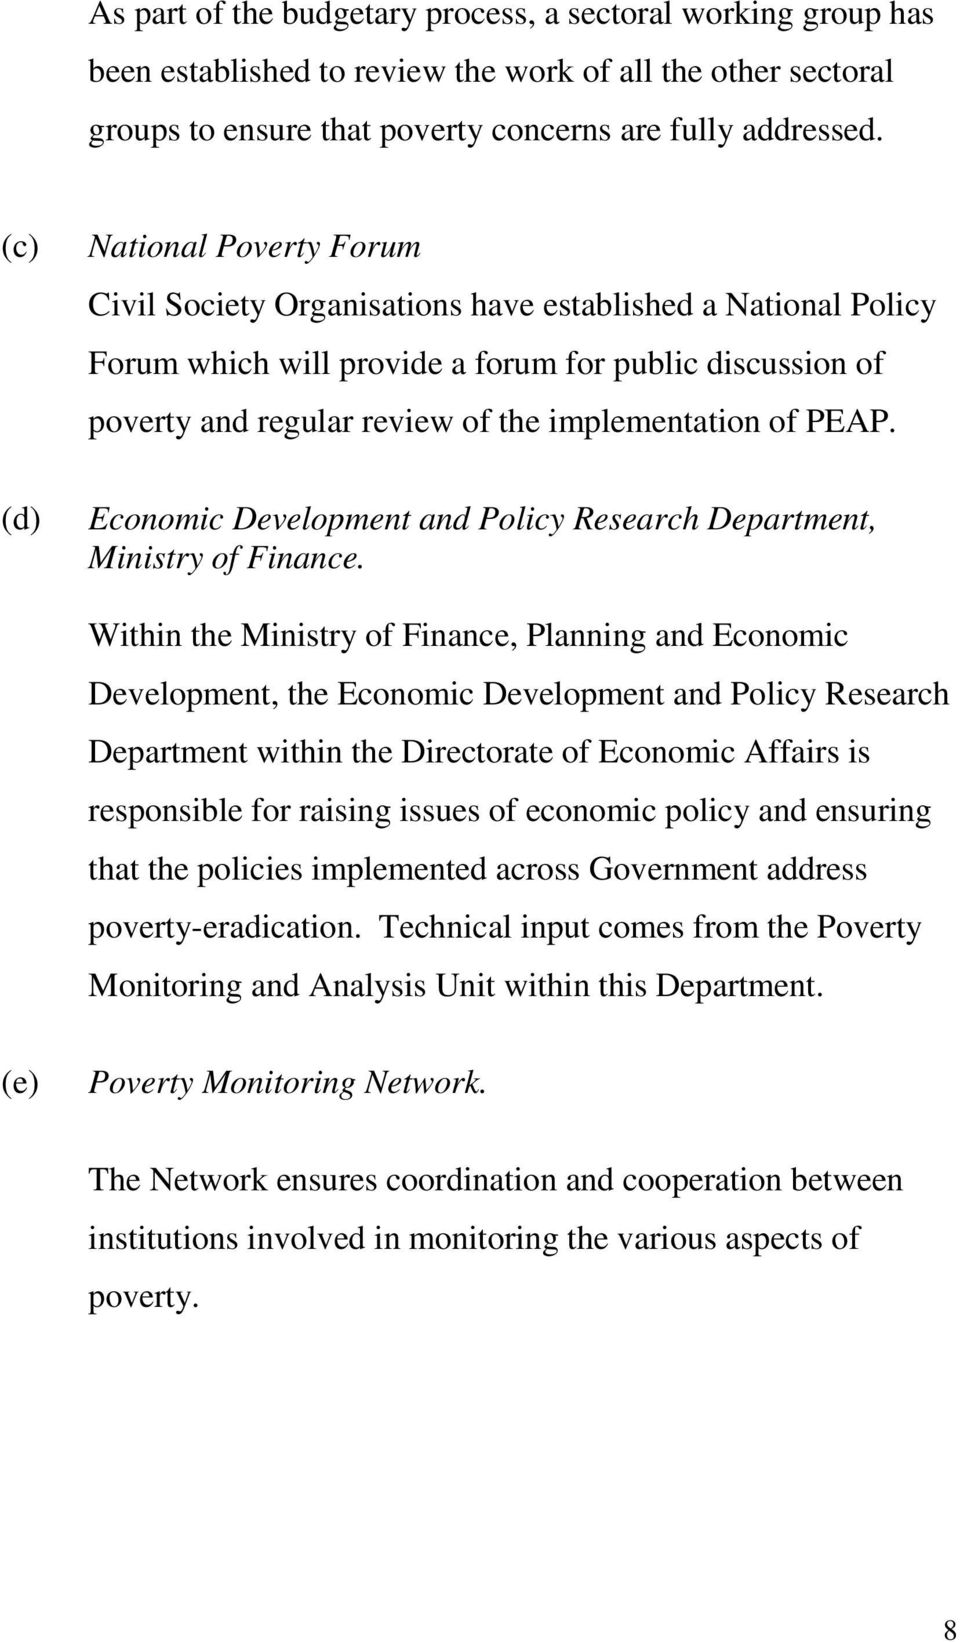 implementation of PEAP. Economic Development and Policy Research Department, Ministry of Finance.